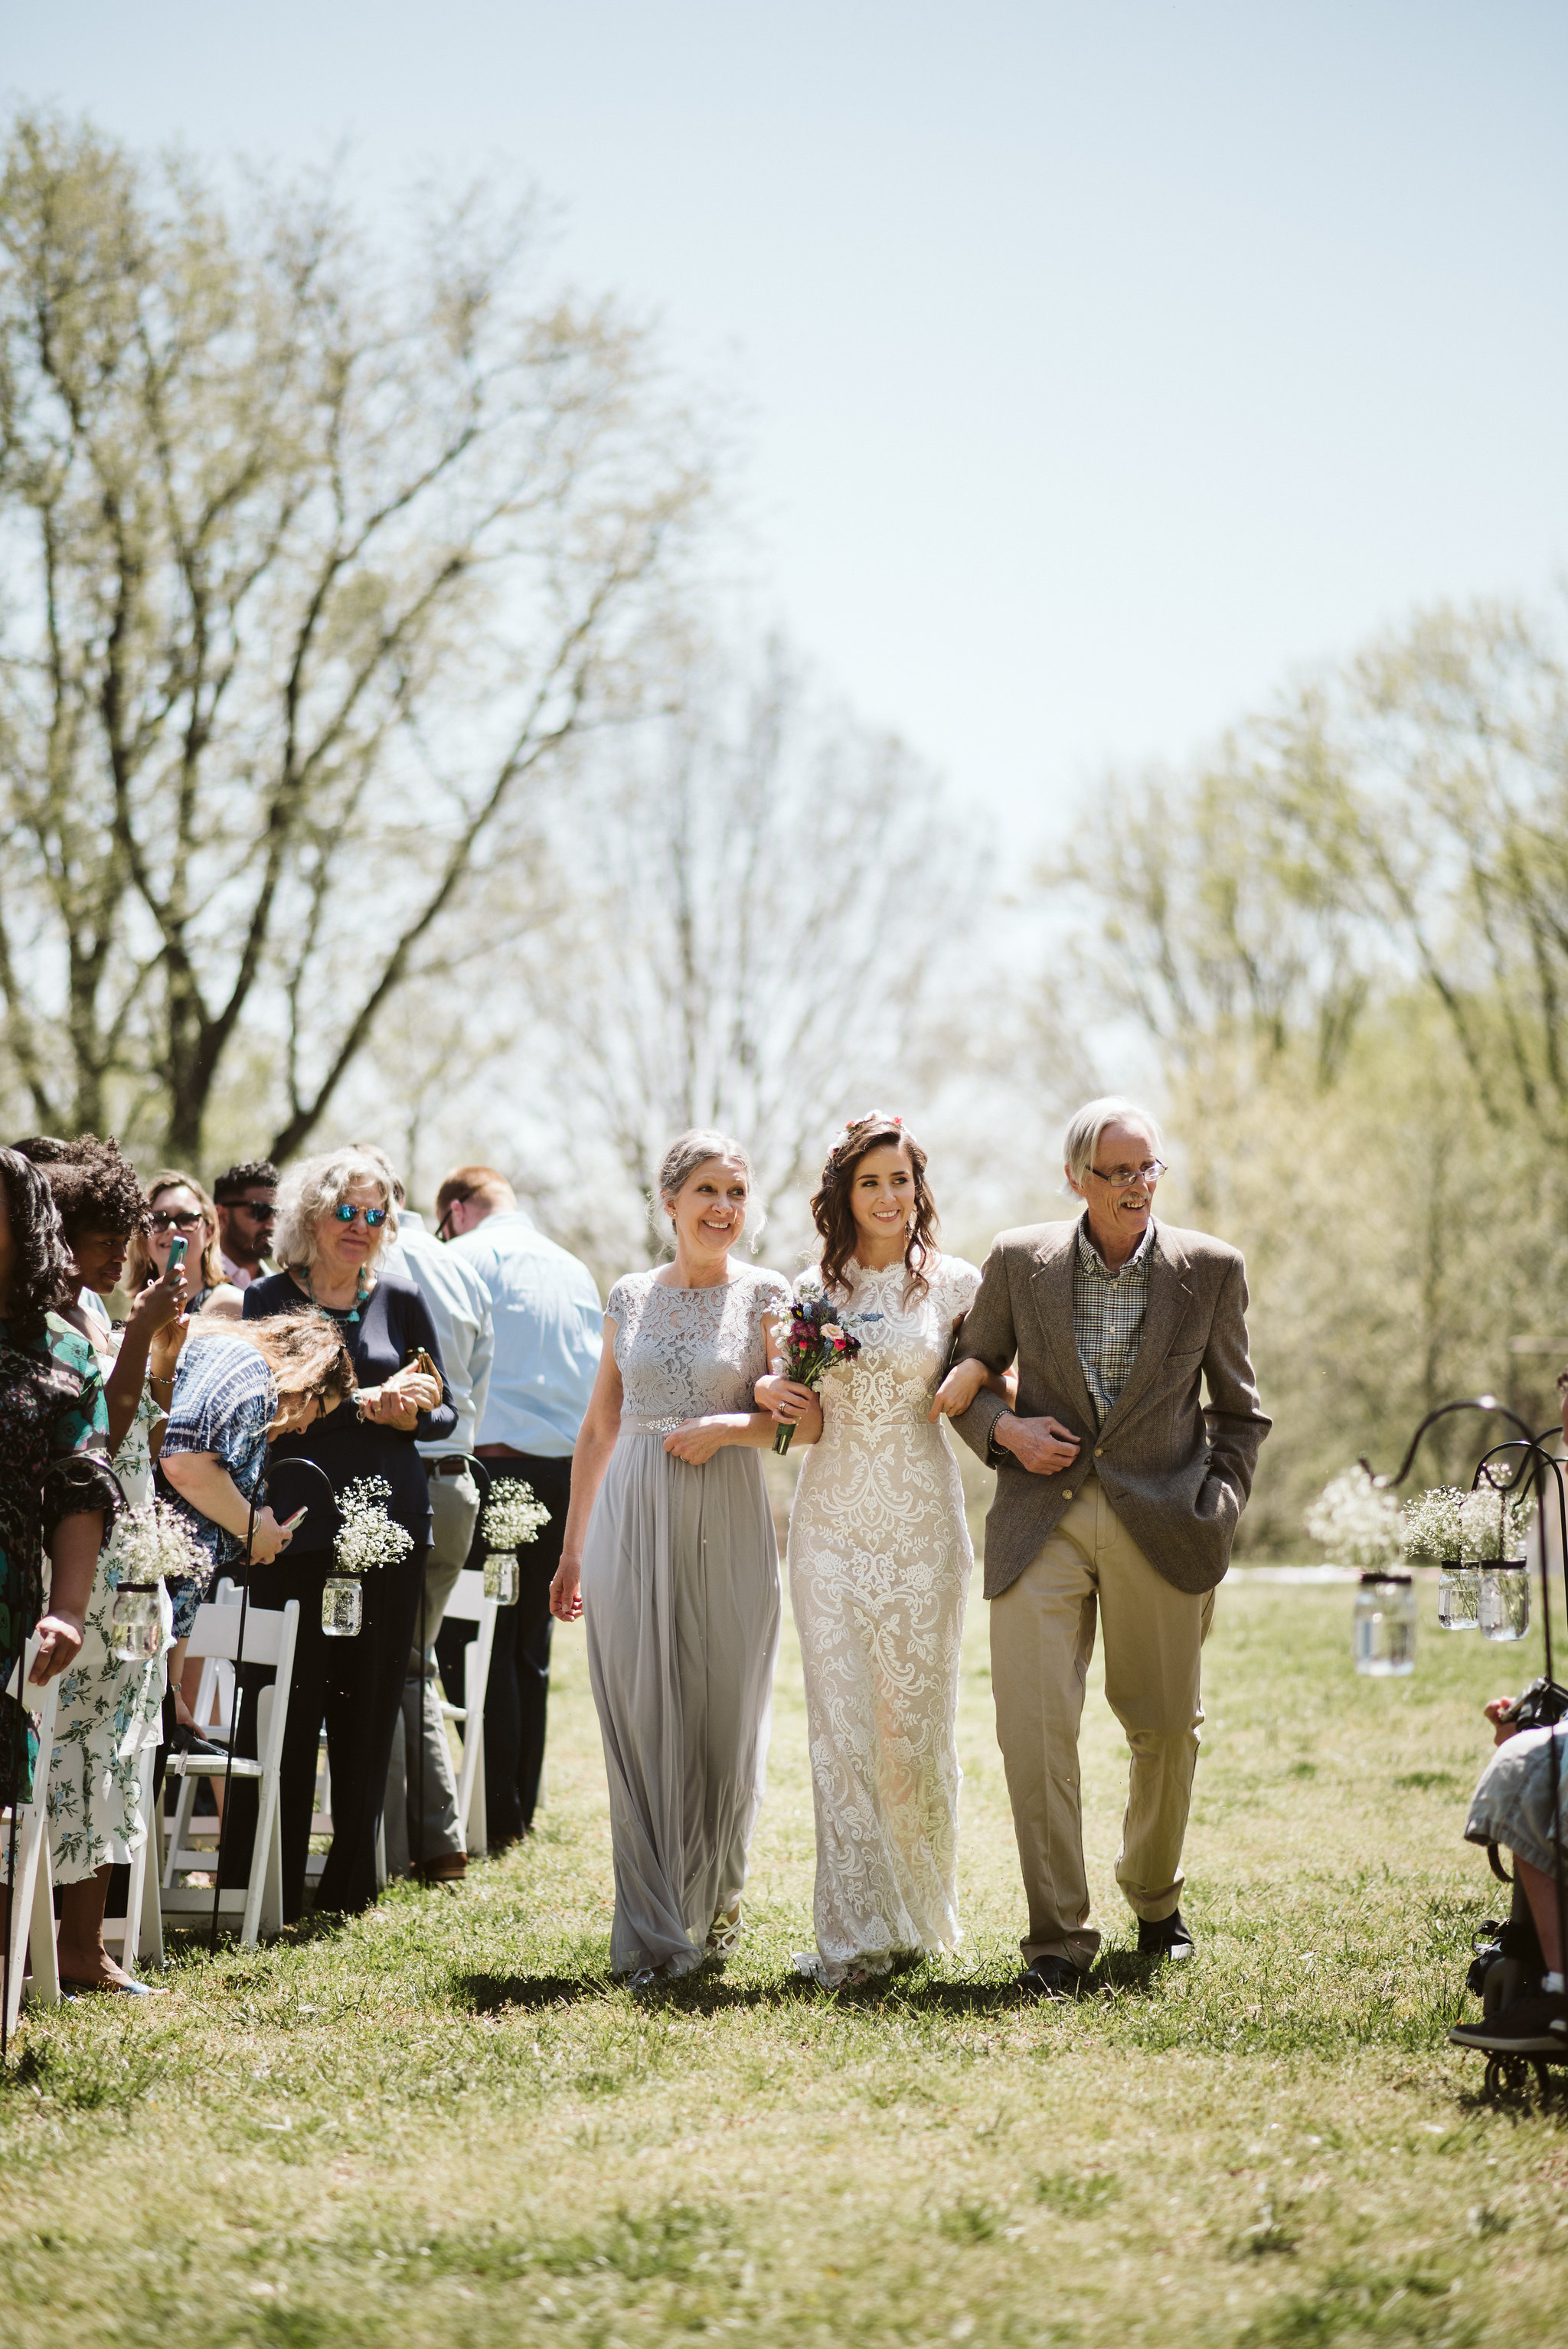 Spring Outdoor Wedding, Park, Baltimore Wedding Photographer, DIY, Classic, Upcycled, Garden Party, Romantic, Bride Walking Down the Aisle with Parents, BHLDN Wedding Dress, Flower Crown